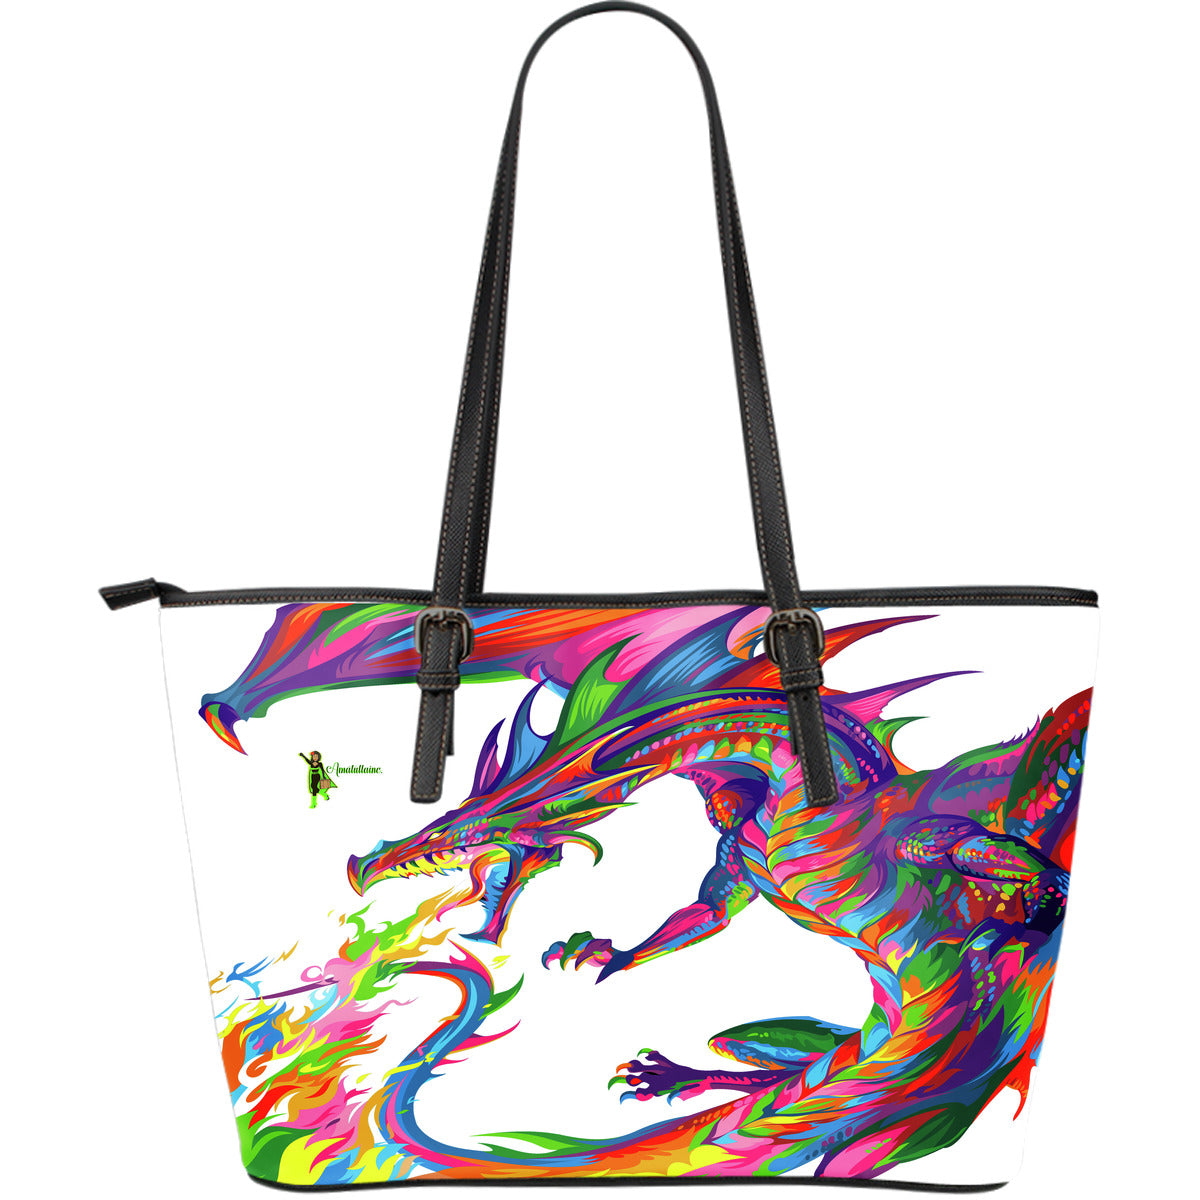 Amatullainc. Fantasy Dragon Leather Tote Bags are custom-made-to-order and handcrafted to the highest quality standards. This beautiful bag features a Double-Sided Print. Manufactured with premium water-resistant PU leather.